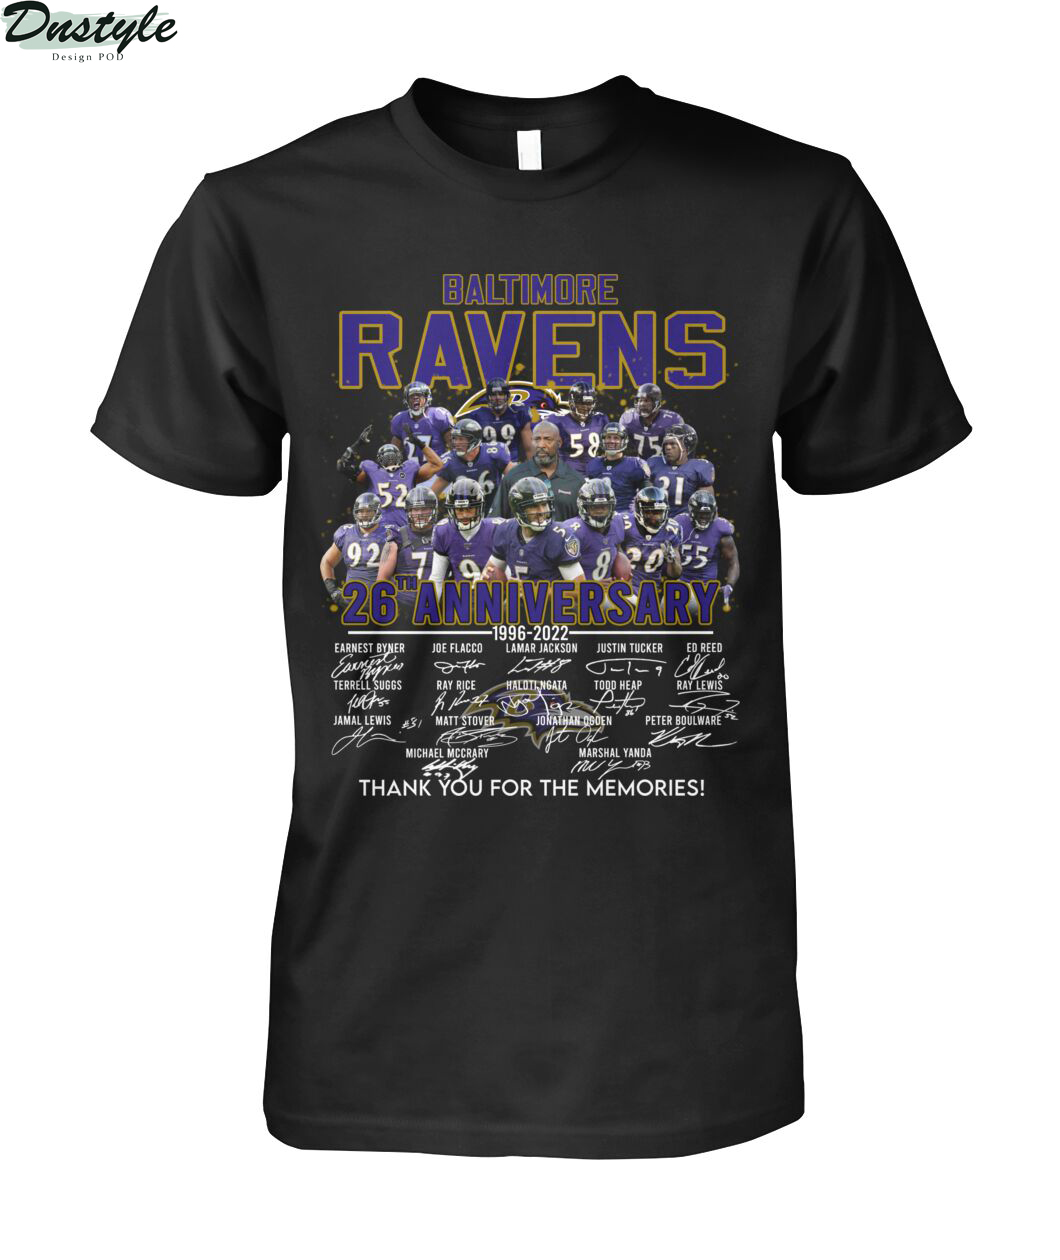 Baltimore ravens 26th anniversary thank you for the memories shirt